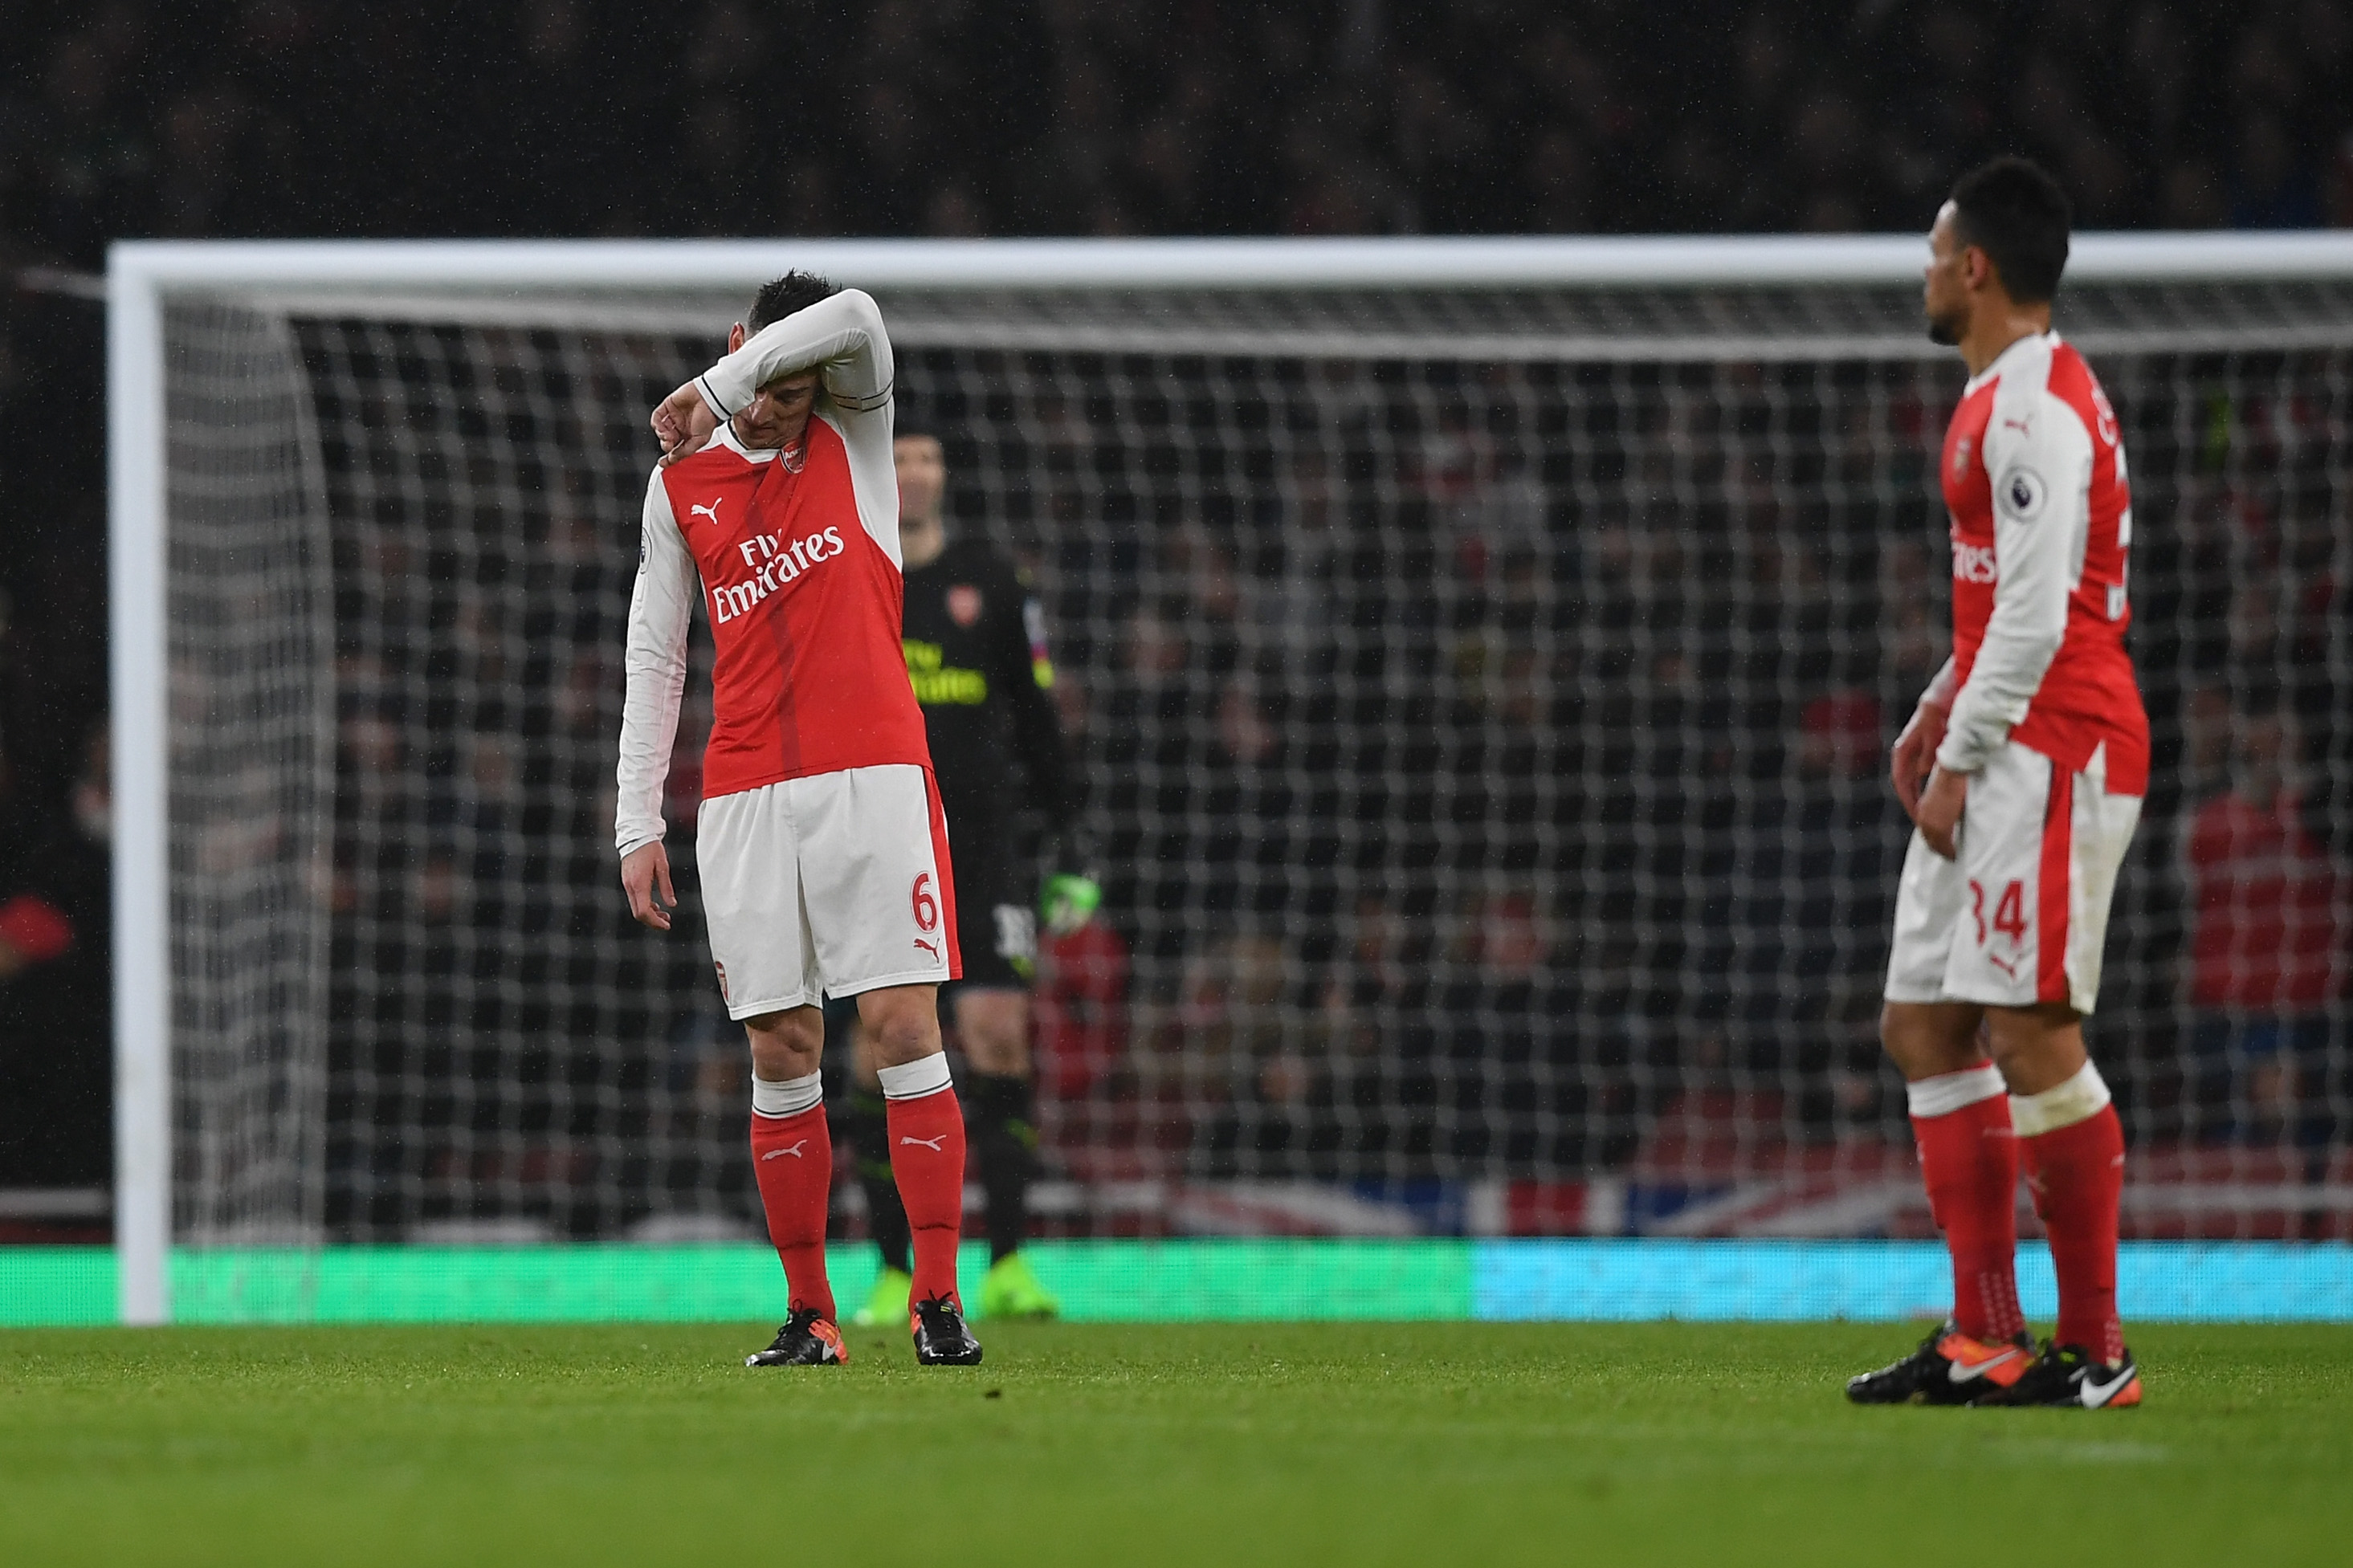 Arsenal Vs Watford: Complete Player Ratings